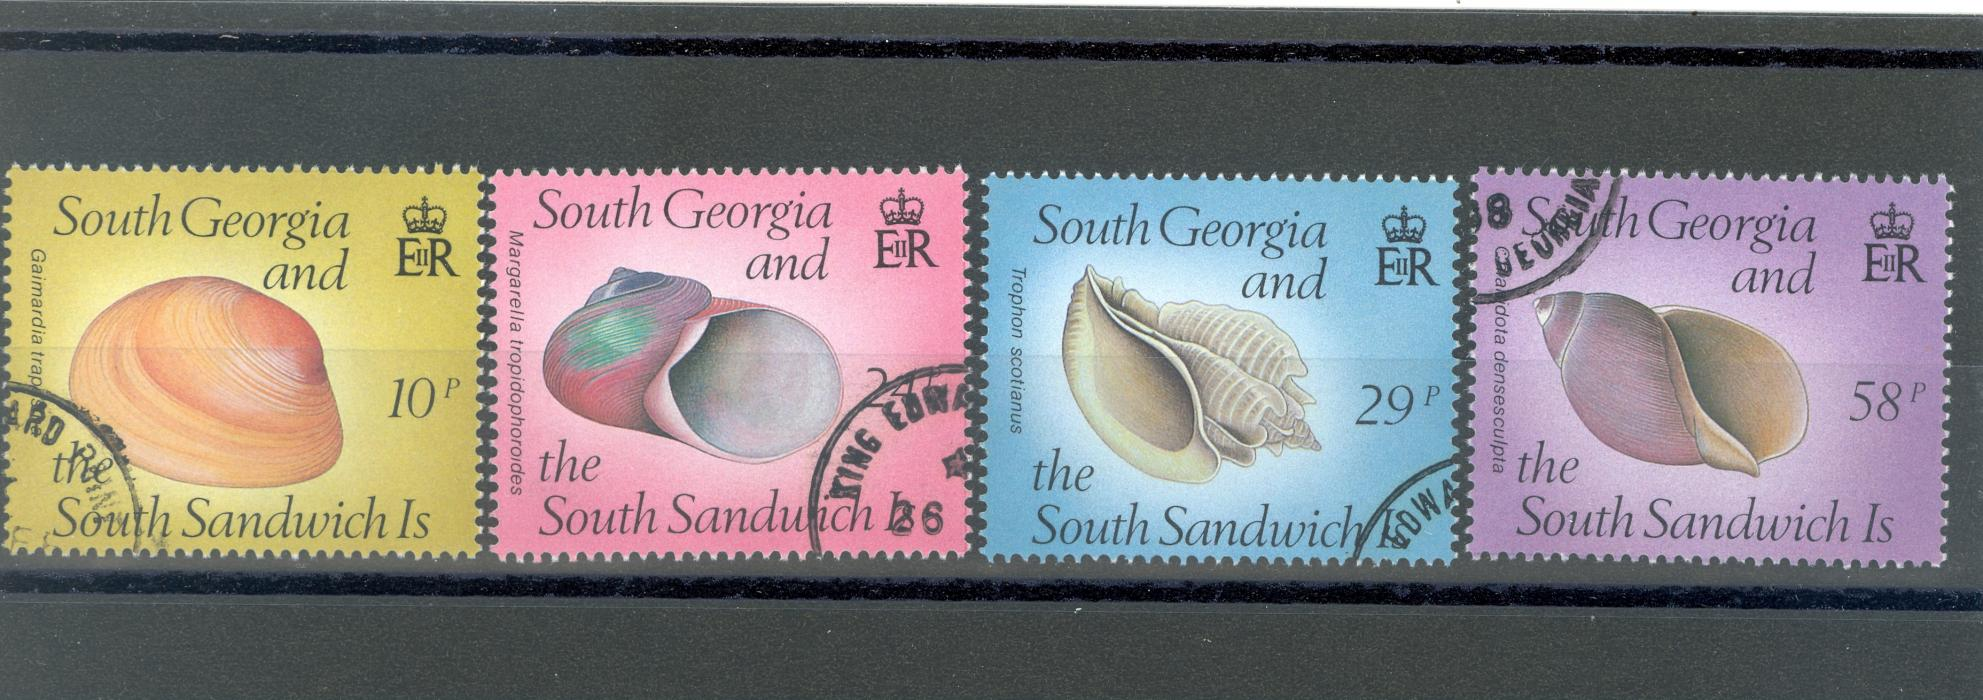 South Georgia & South Sandwich Islands SG 179-182 1988 Sea Shells Fine Used